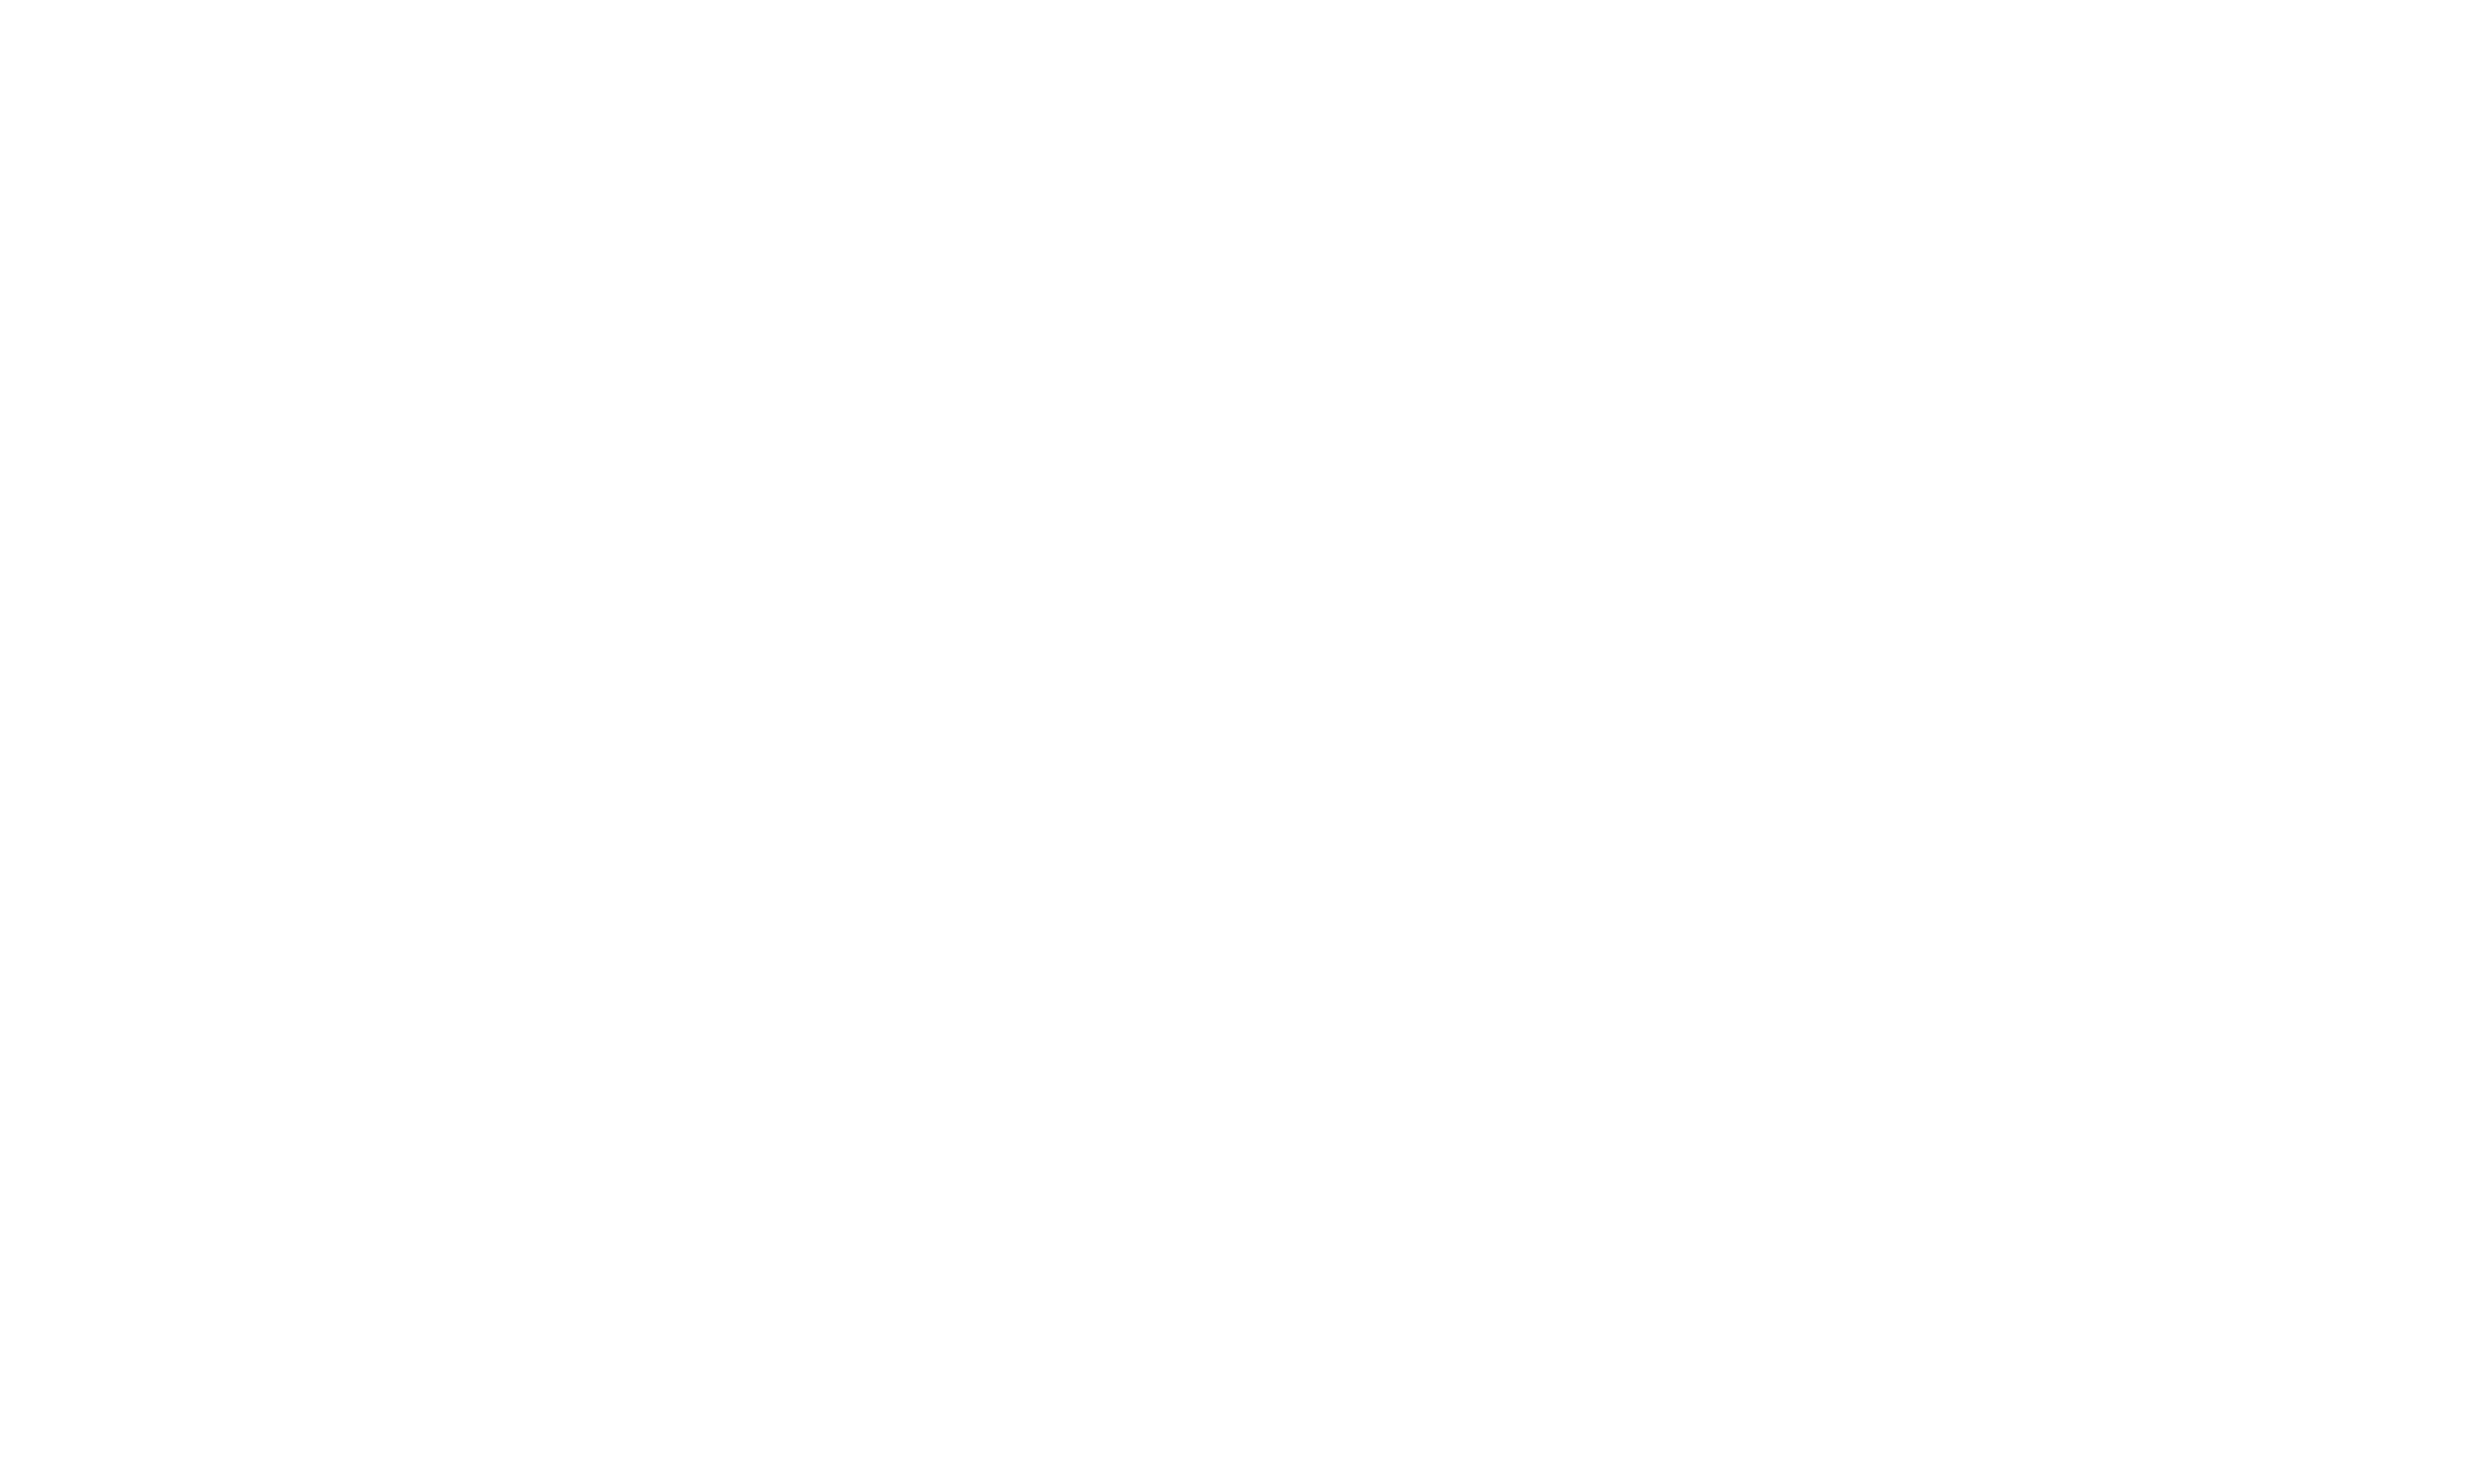 Milwaukee Flag - Black and White